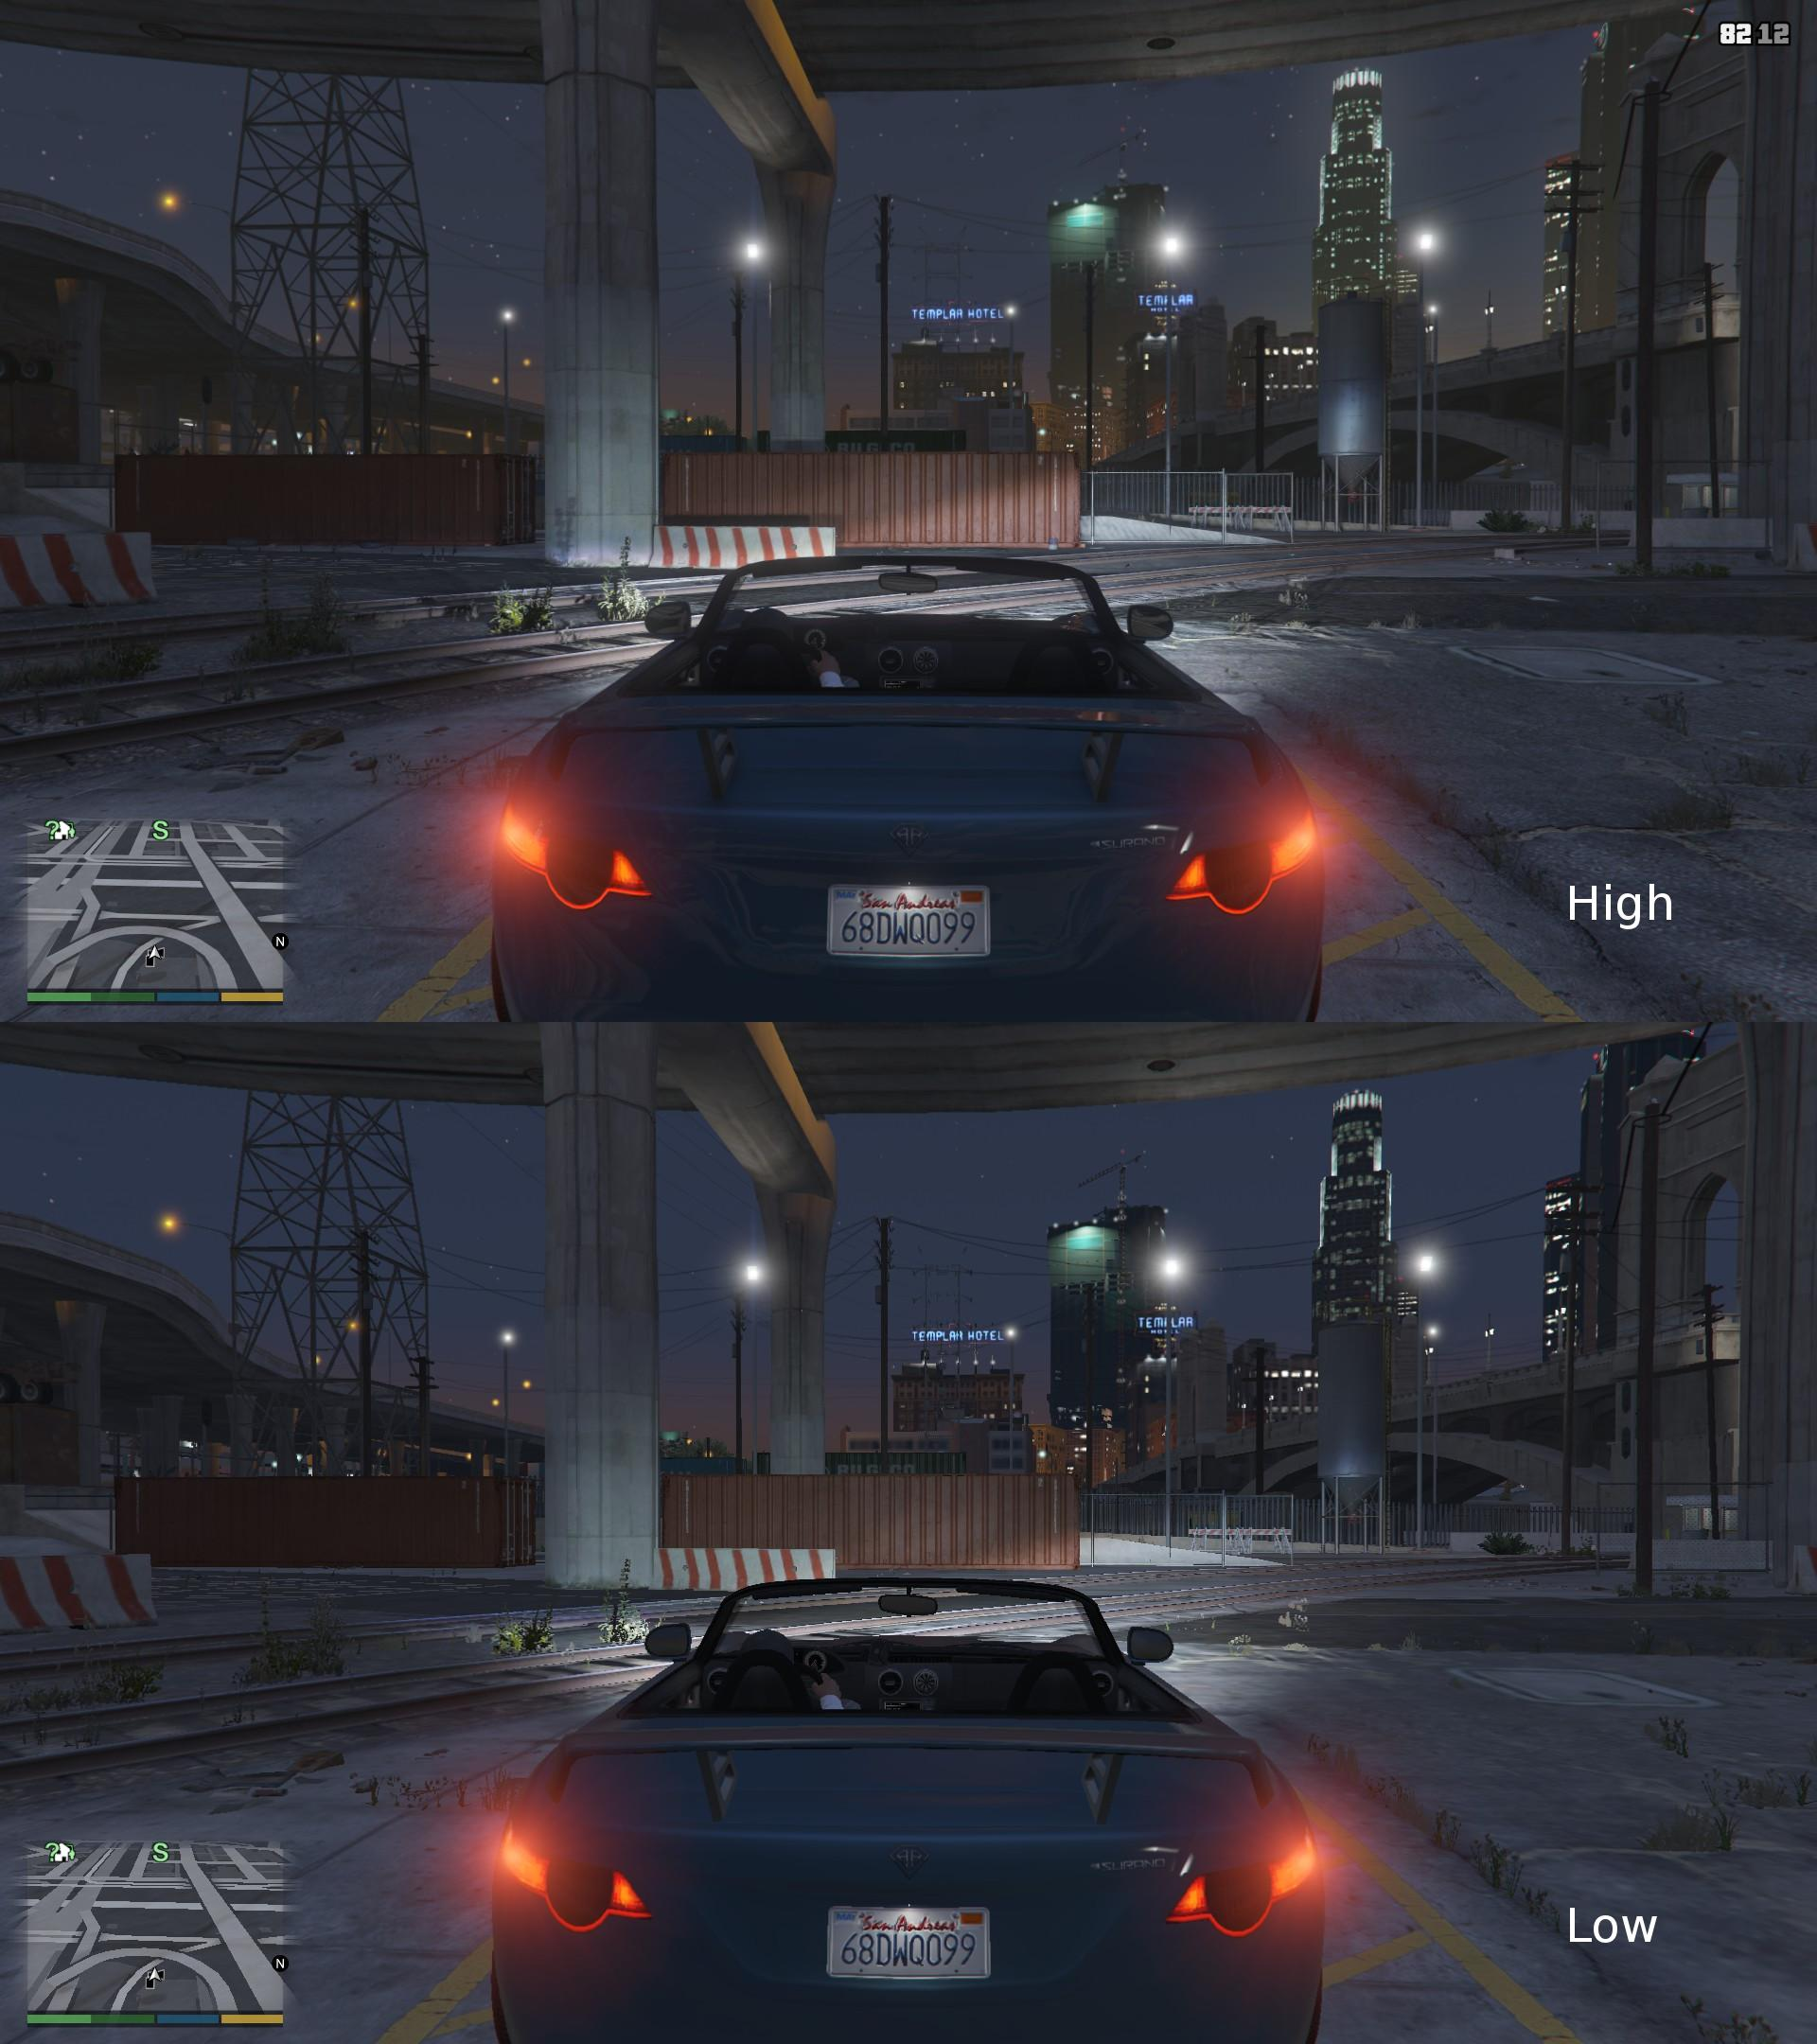 GTA 5 PC high and low settings comparison may result in